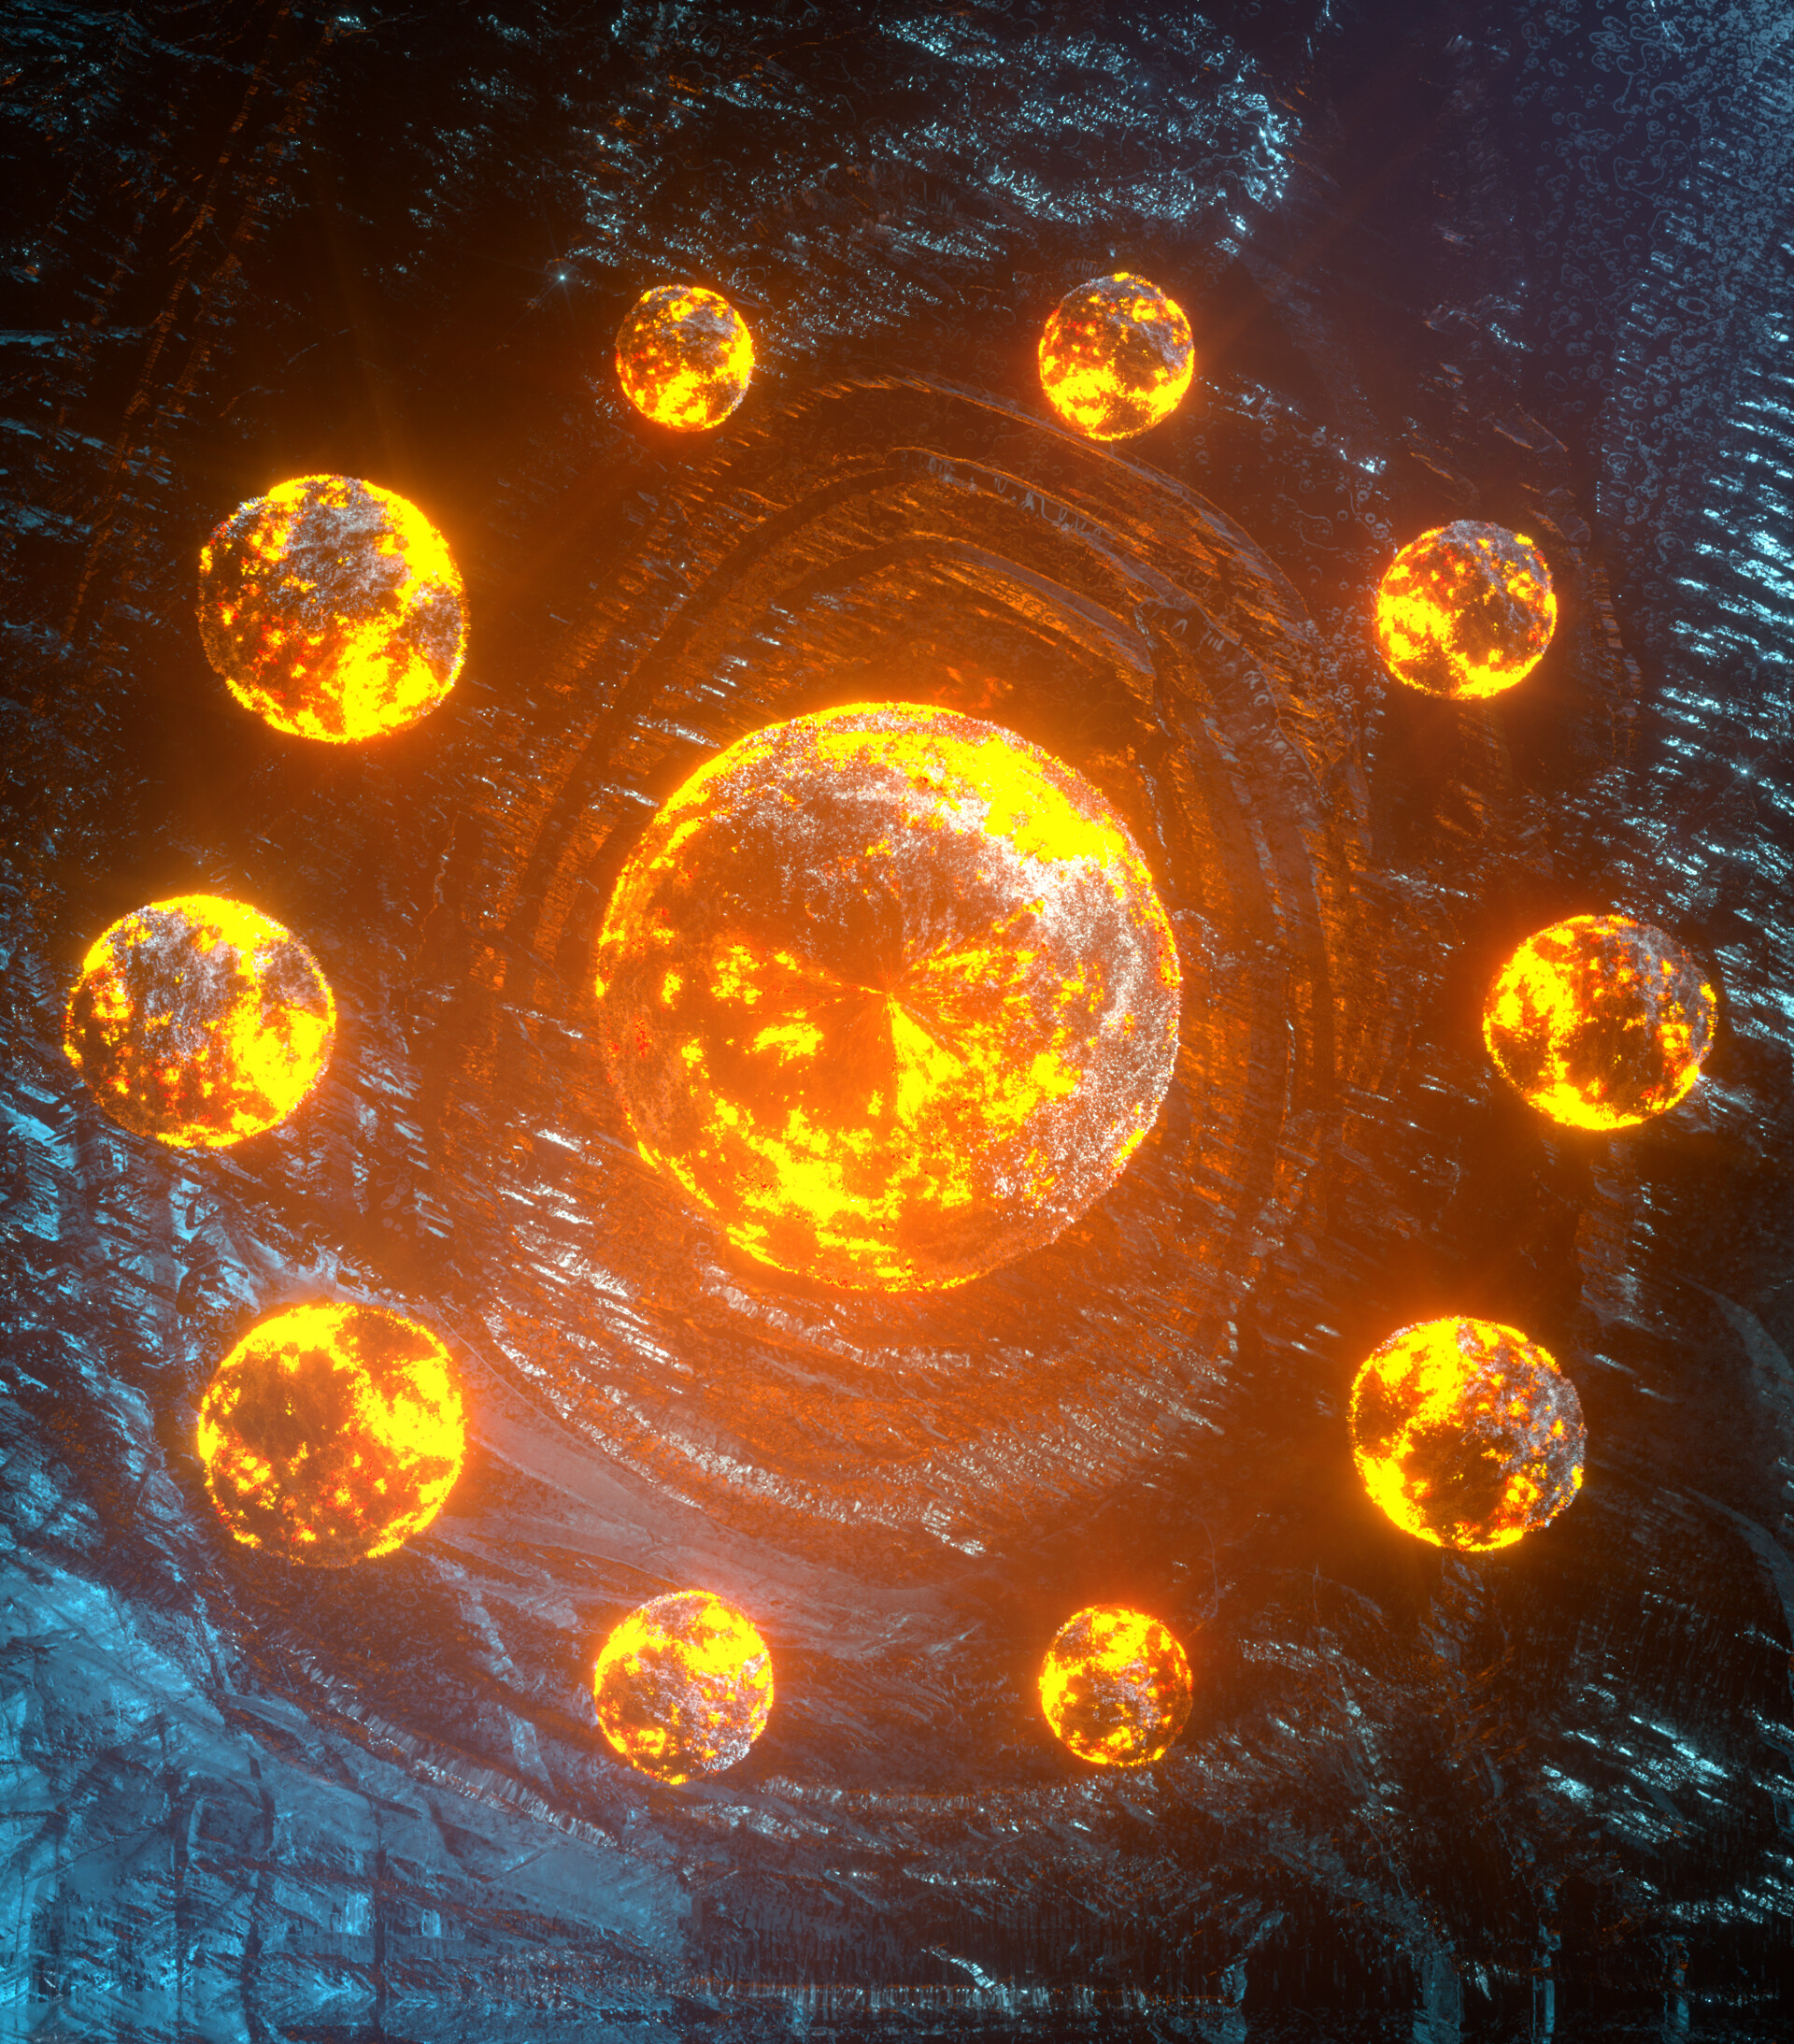 123703 download wallpaper Balls, Spheres, Sphere, Glow, Bright, 3D screensavers and pictures for free